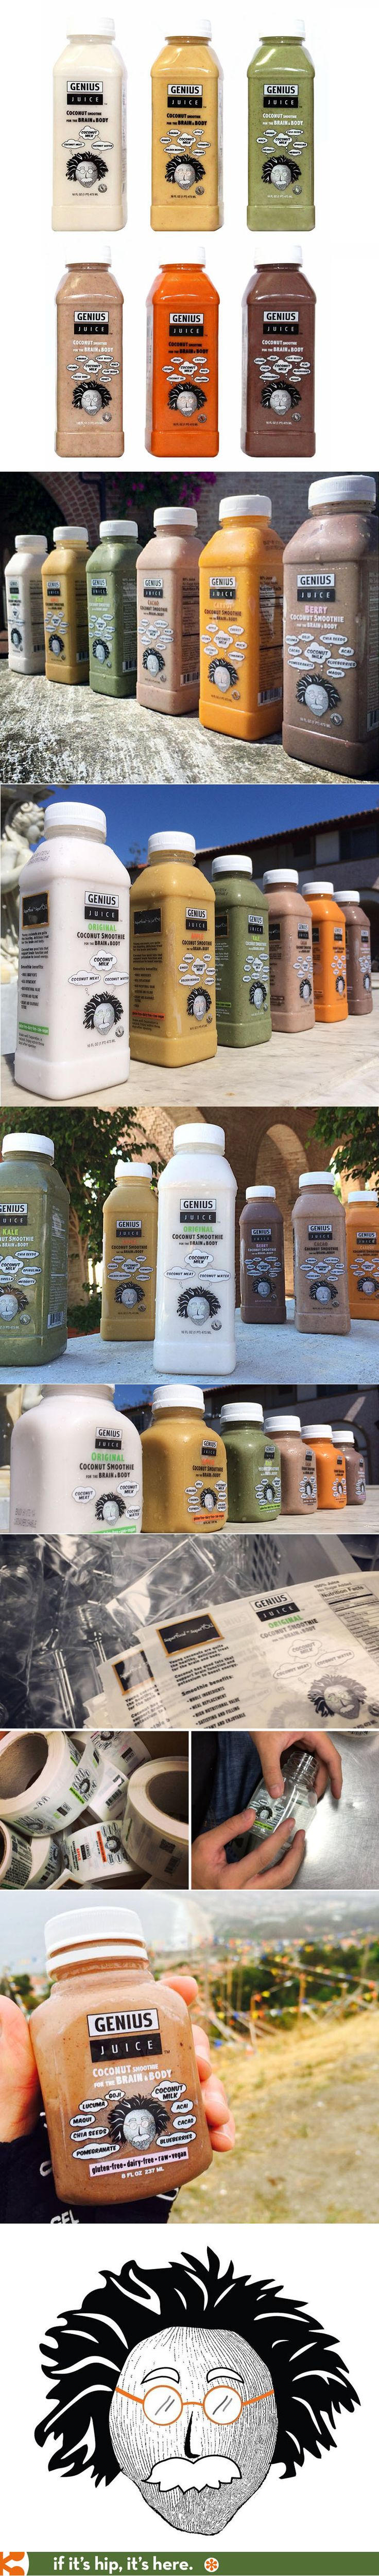 Fun package design for Genius Juice, a line of coconut based smoothies in two size bottles.